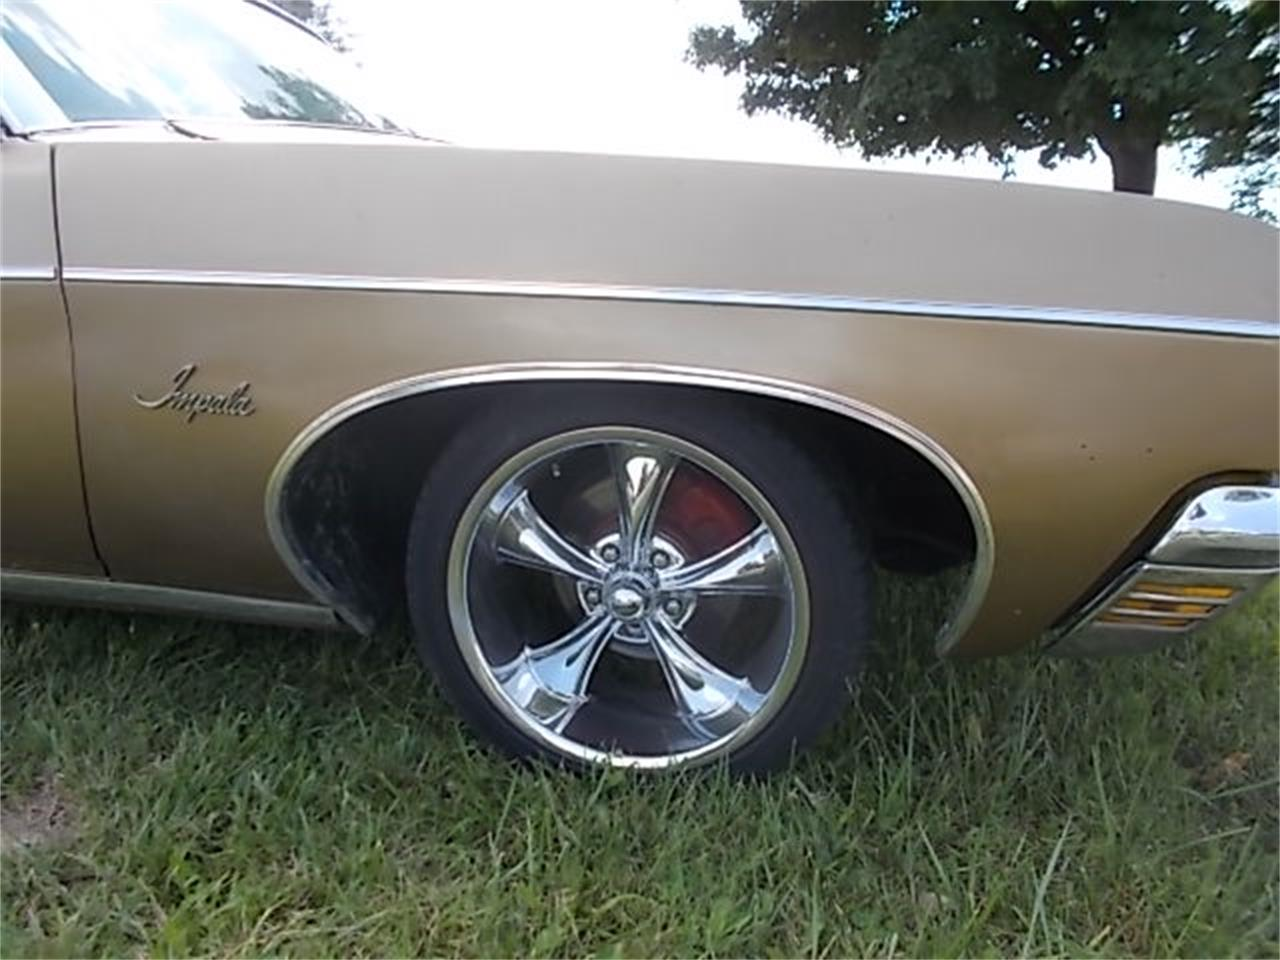 Large Picture of '70 Chevrolet Impala located in Creston Ohio - $9,500.00 - QML6